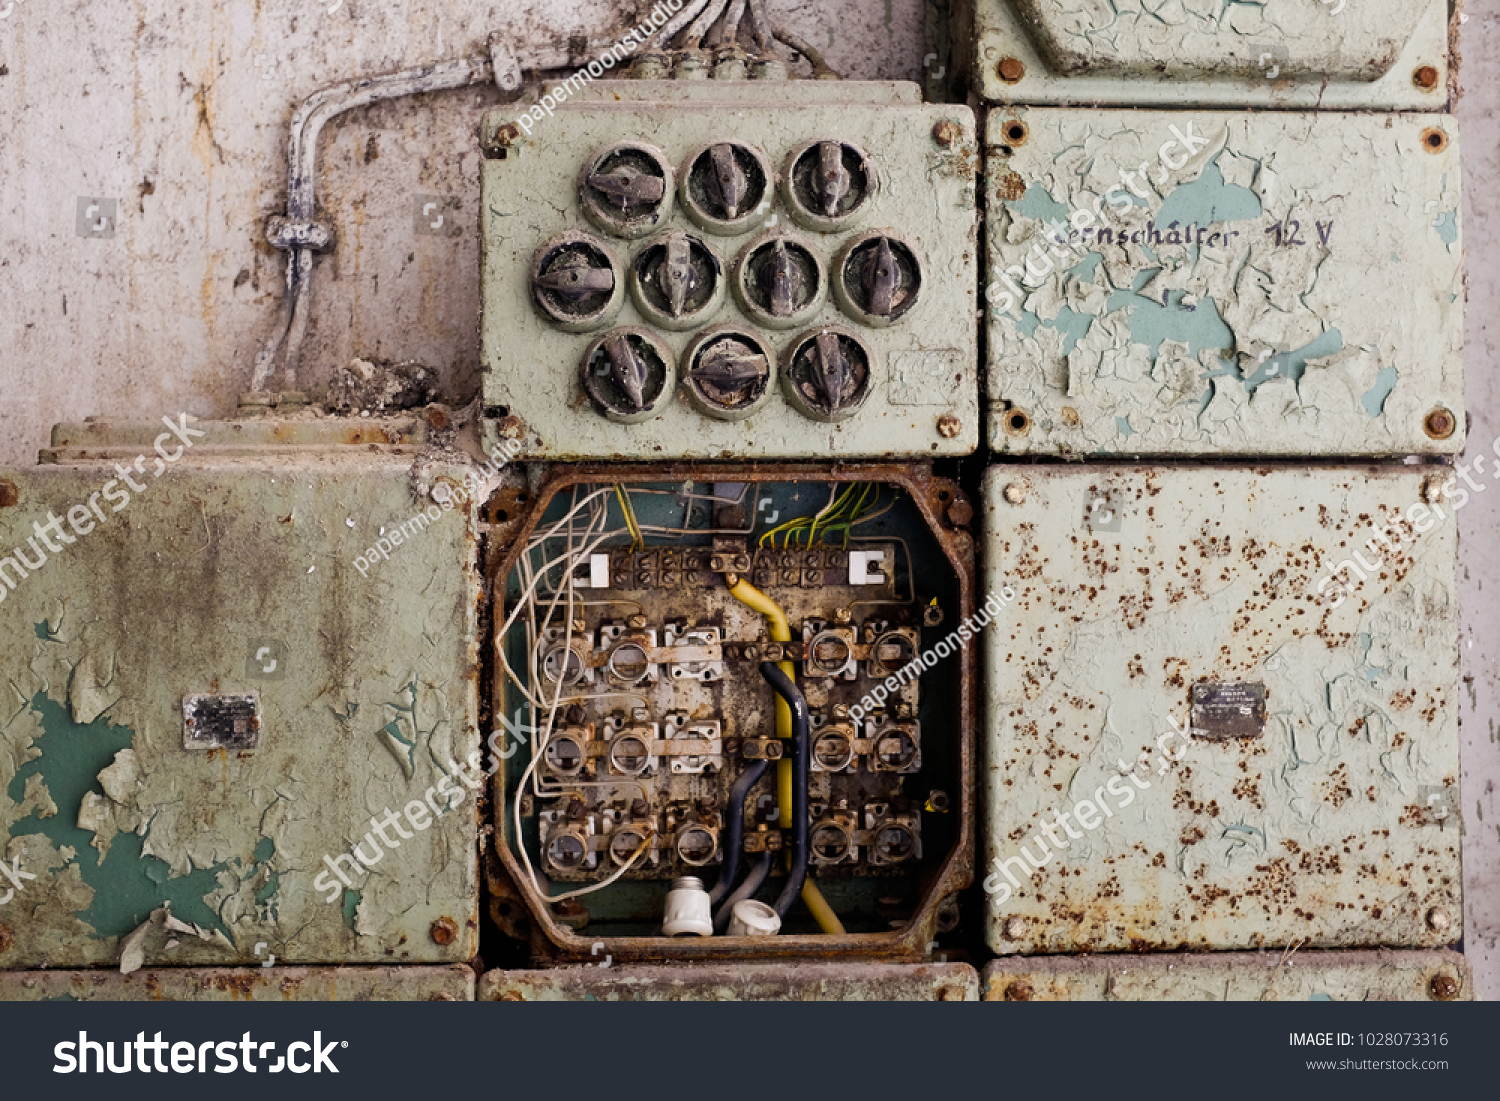 hight resolution of vintage electric panel or fuse box